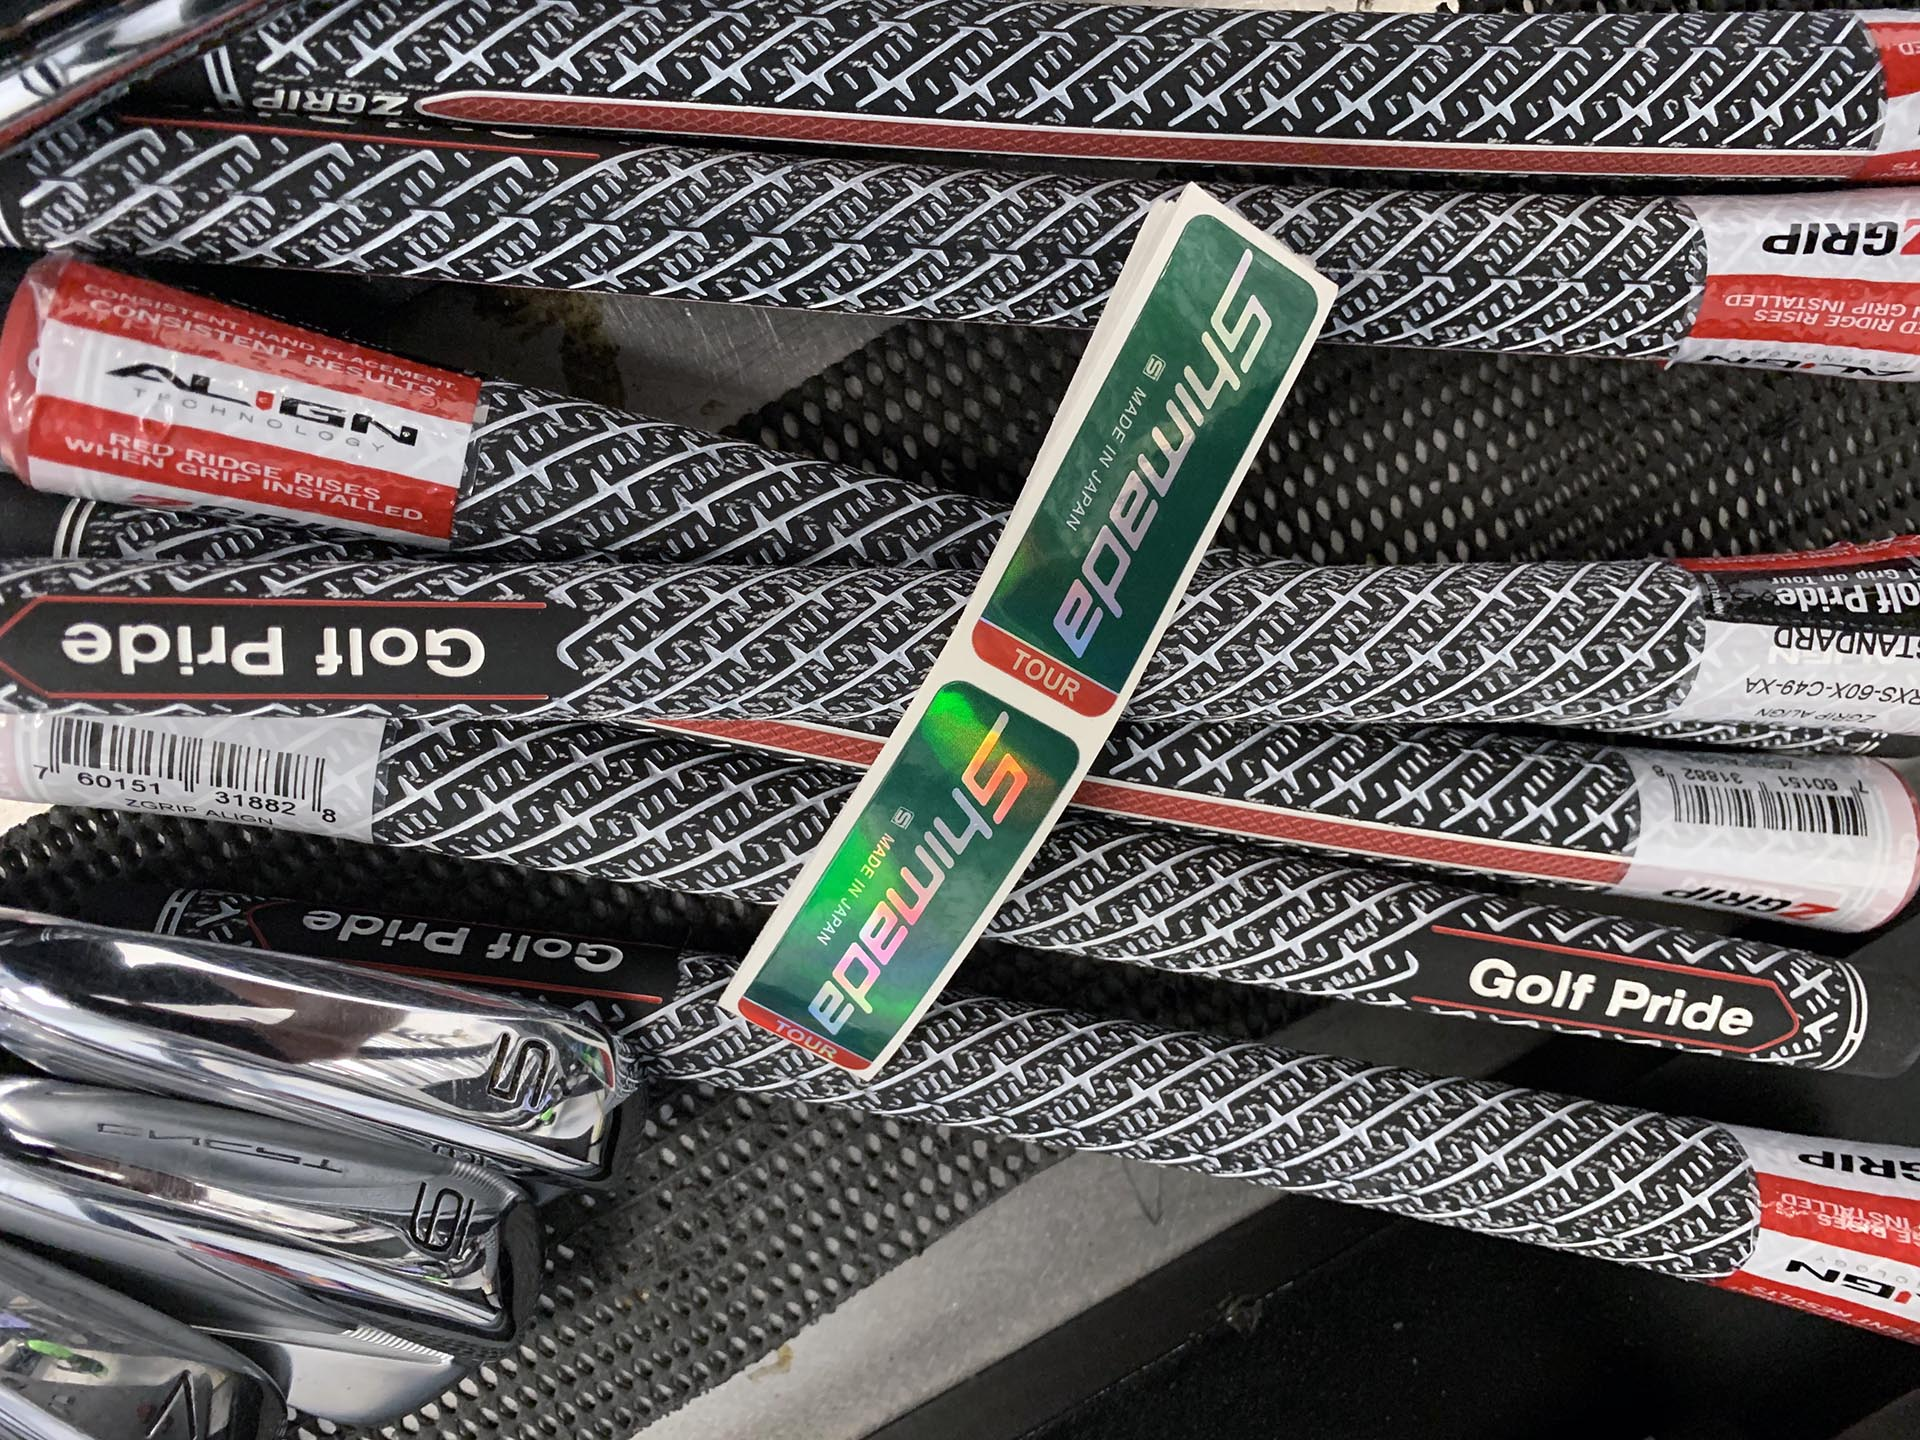 A Titleist CNCPT 02 rebuild with Shimada Tour Shafts and Golf Pride Align grips